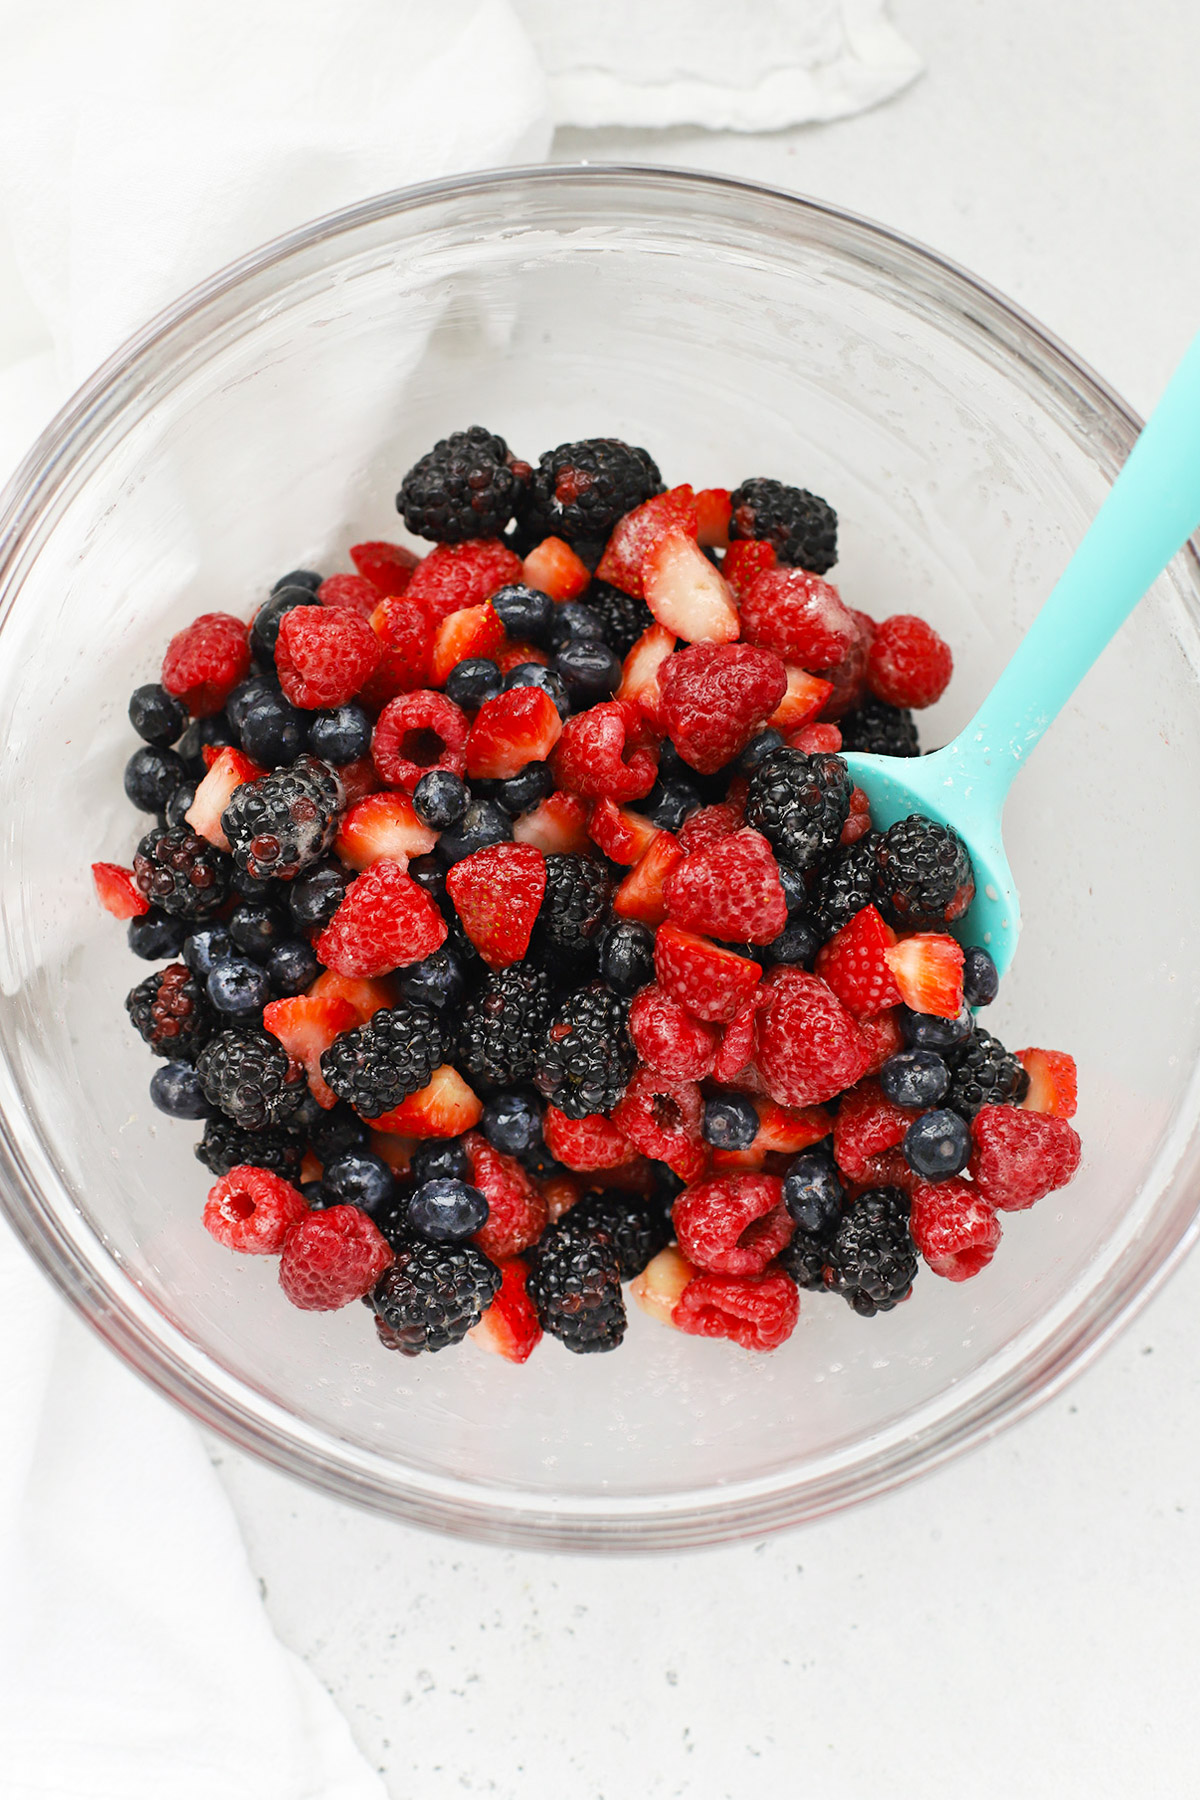 Overhead view of gluten-free mixed berry crisp filling in a glass mixing bowl